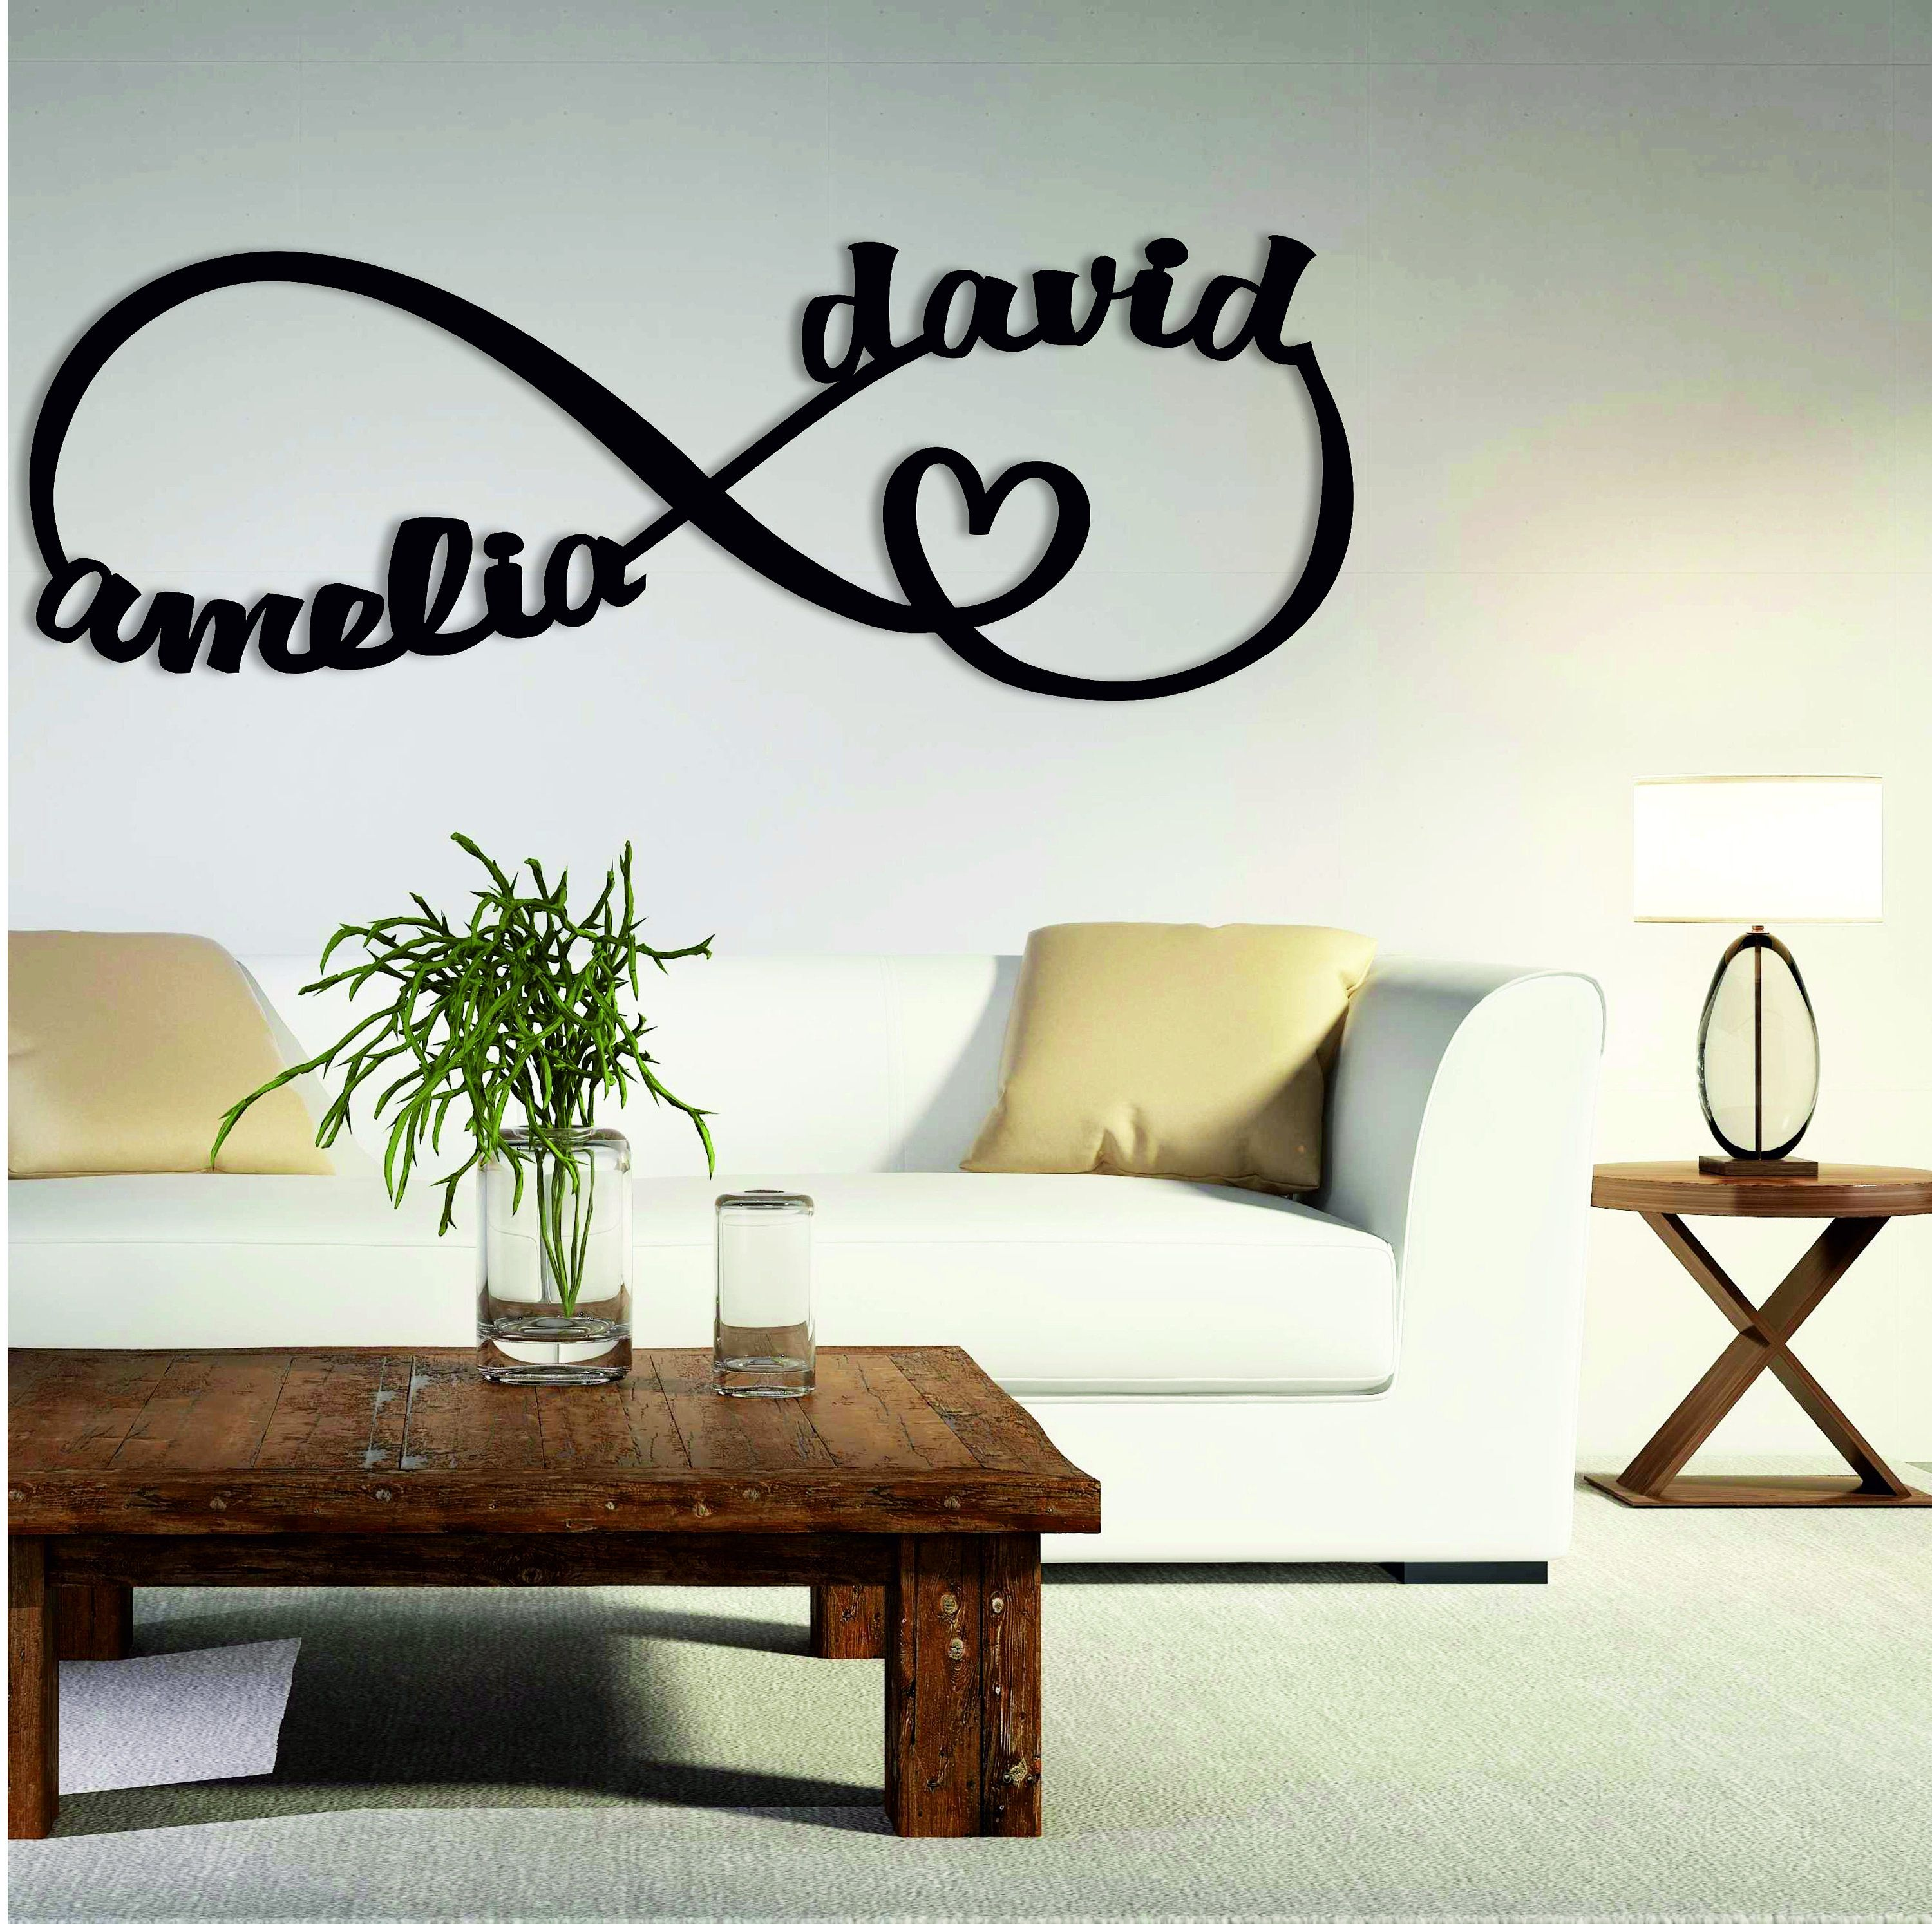 Personalized Infinity Symbol Infinity Sign Name Infinity Etsy In 2021 Metal Wall Art Decor Metal Wall Art Metal Walls